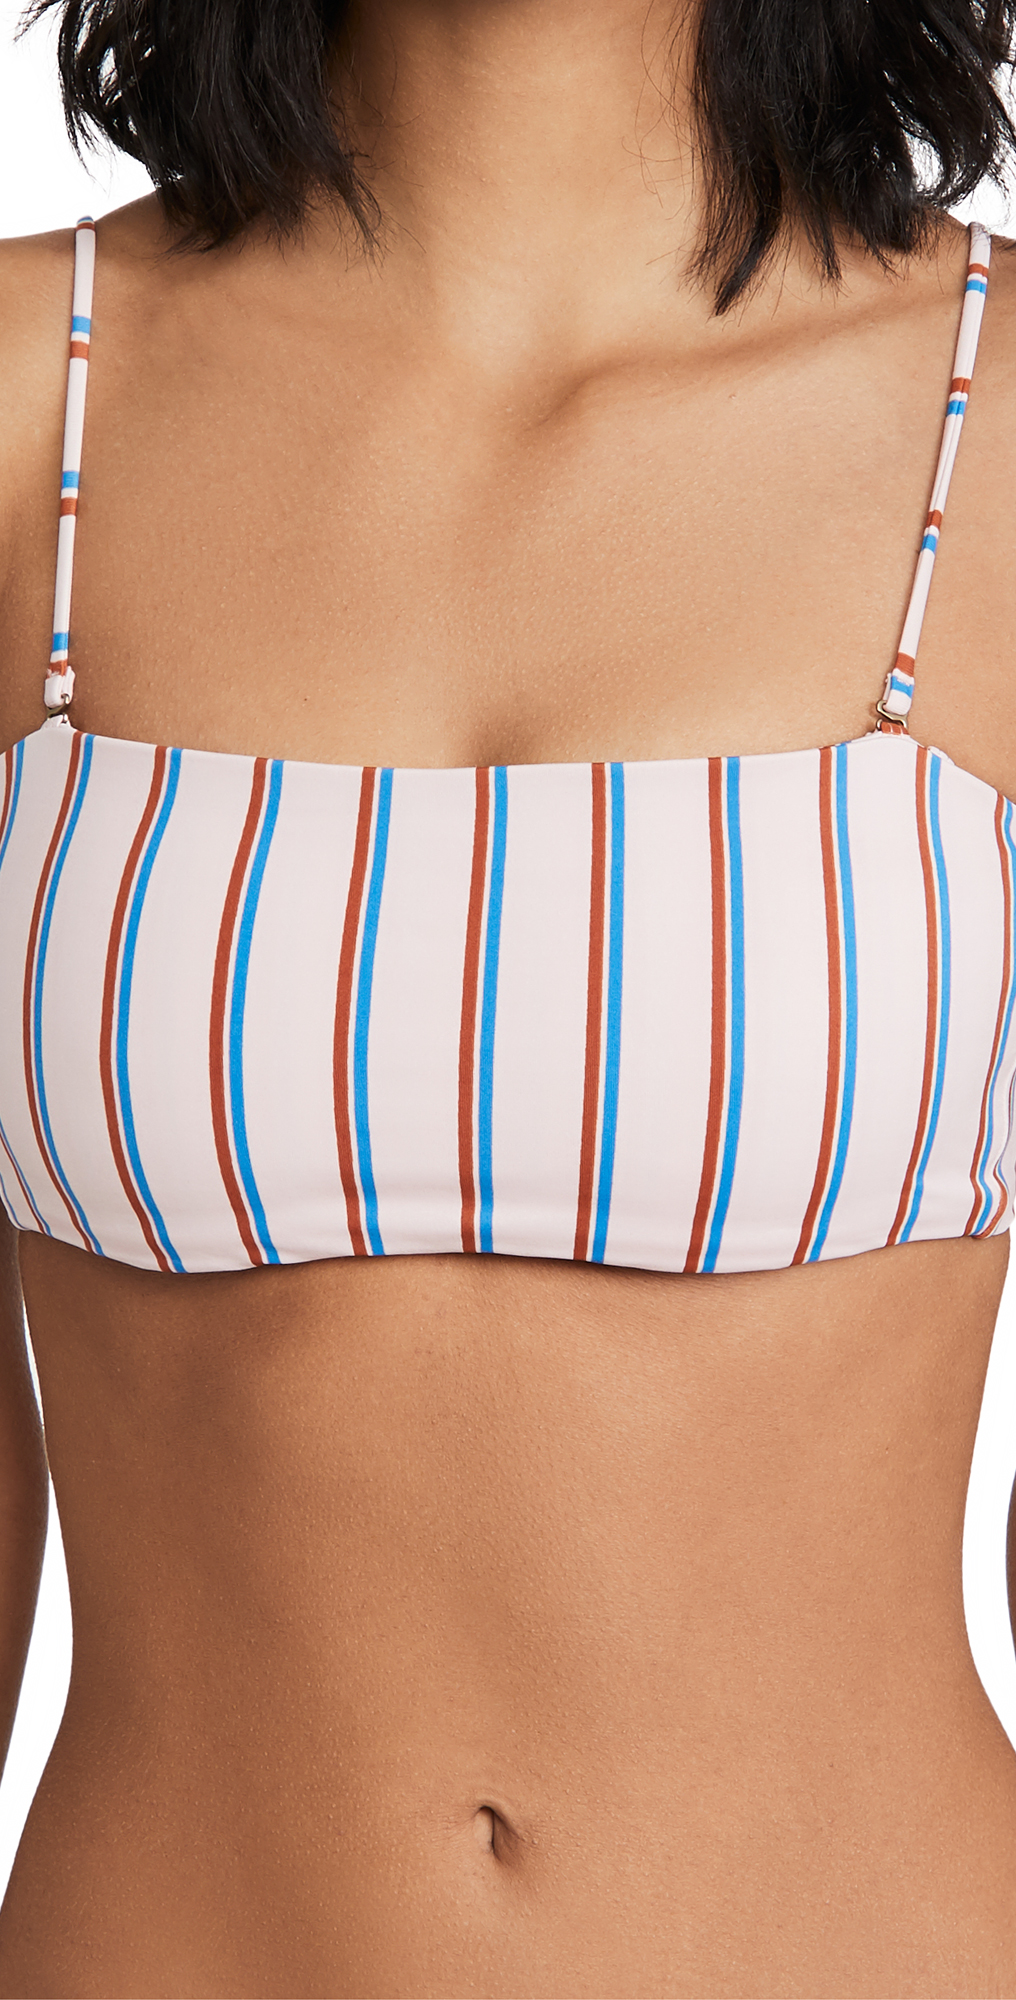 Madewell Second Wave Spaghetti Strap Bandeau Bikini Top